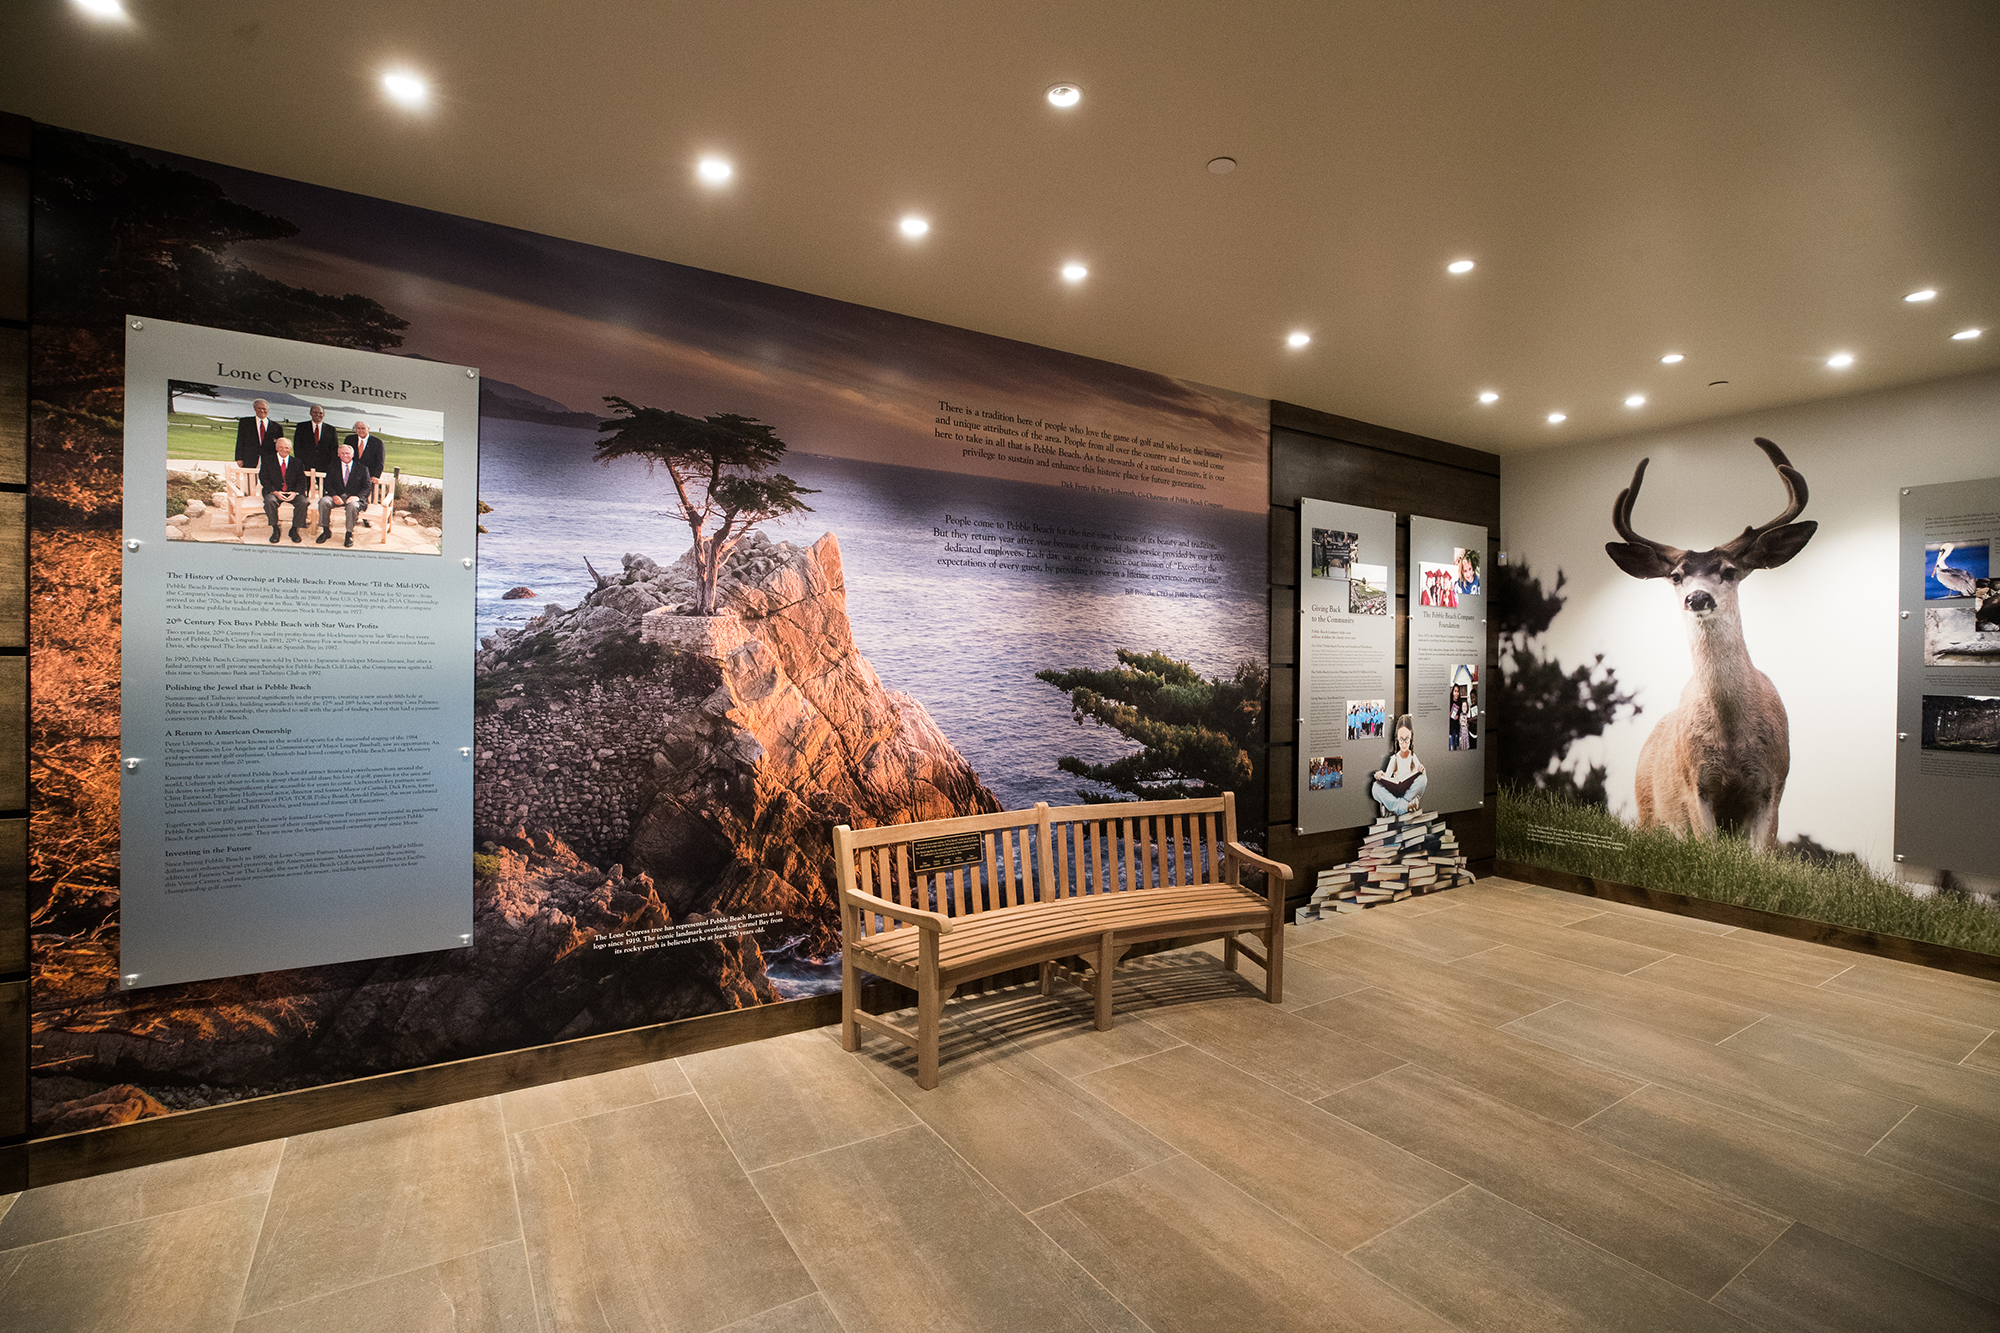 Ownership Wall at the Pebble Beach Visitor Center